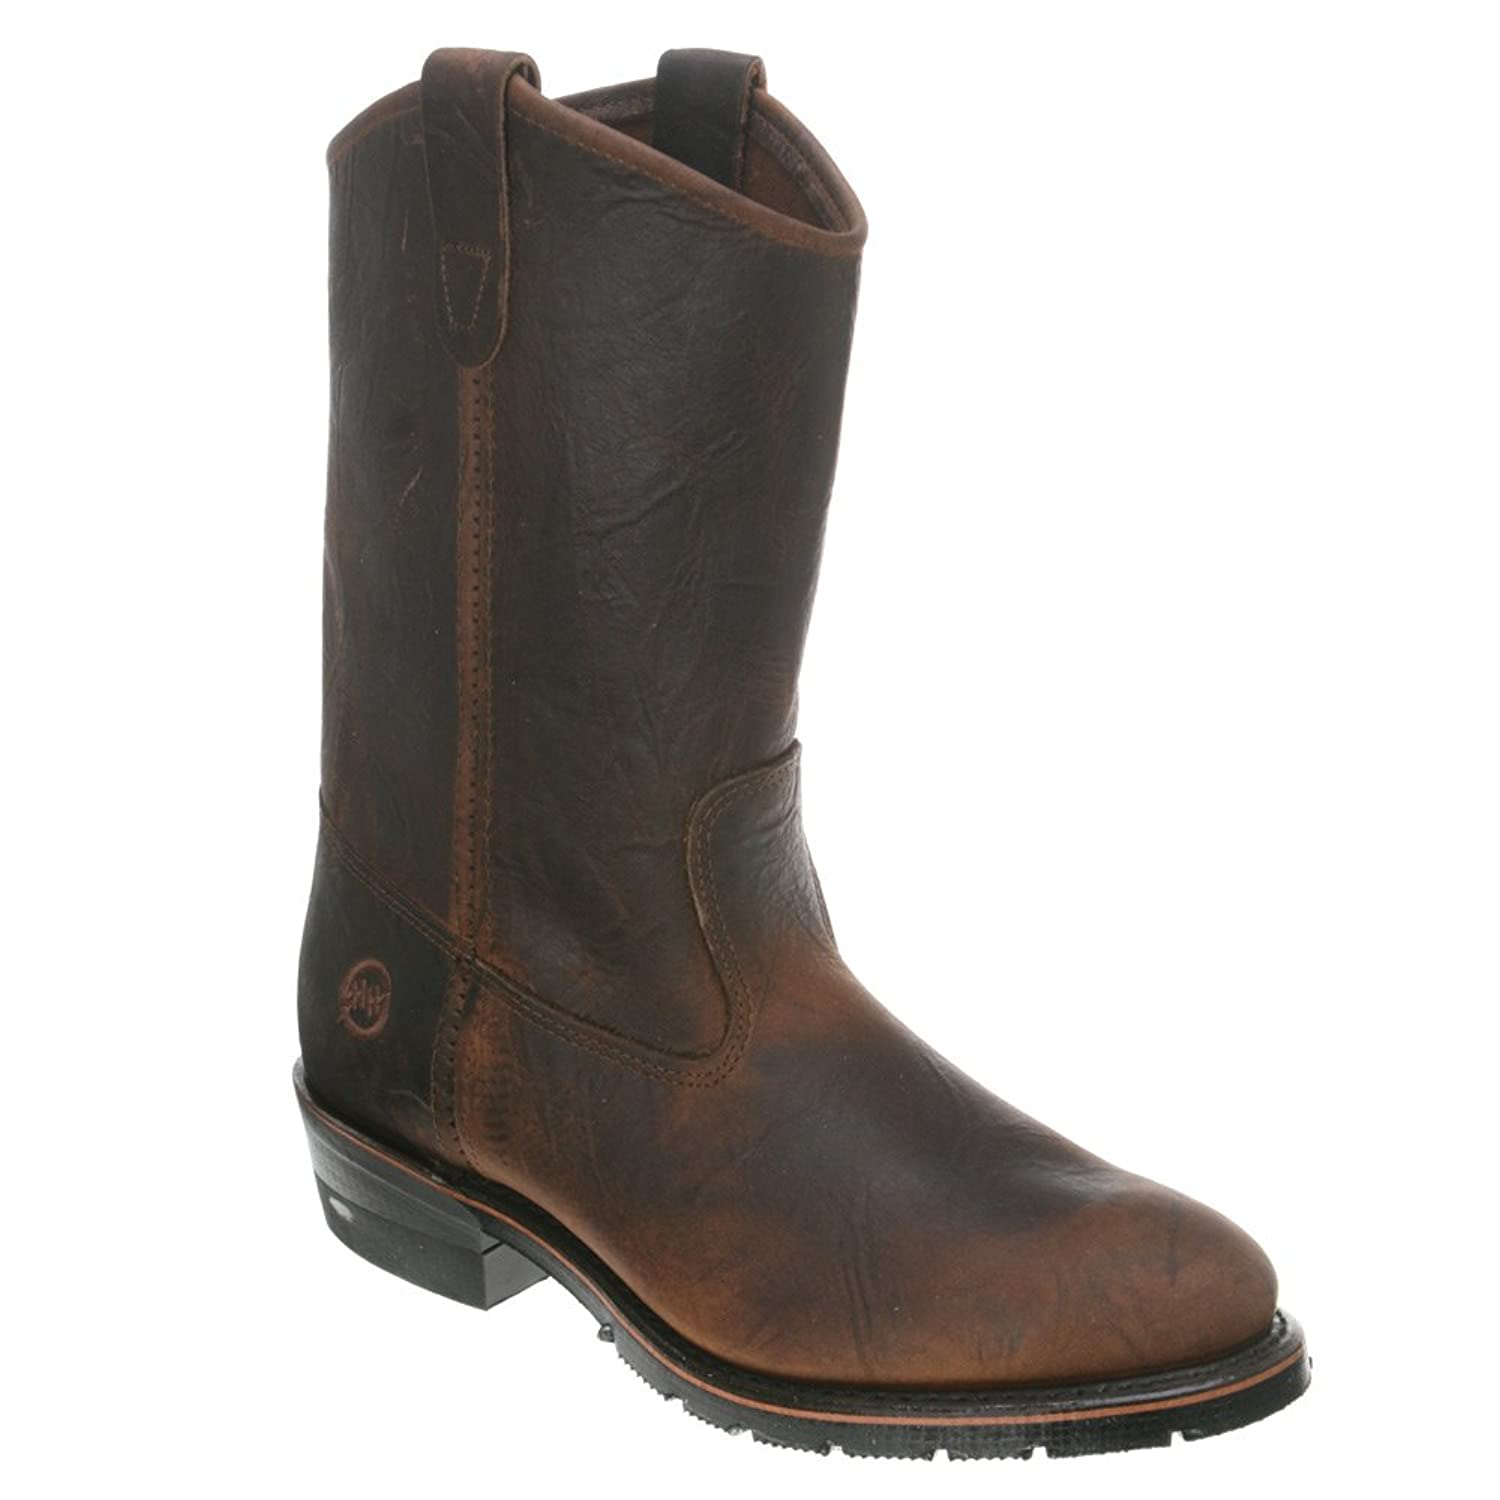 Double-H Boots: Men's 10-Inch Western Cowboy Boots 2522